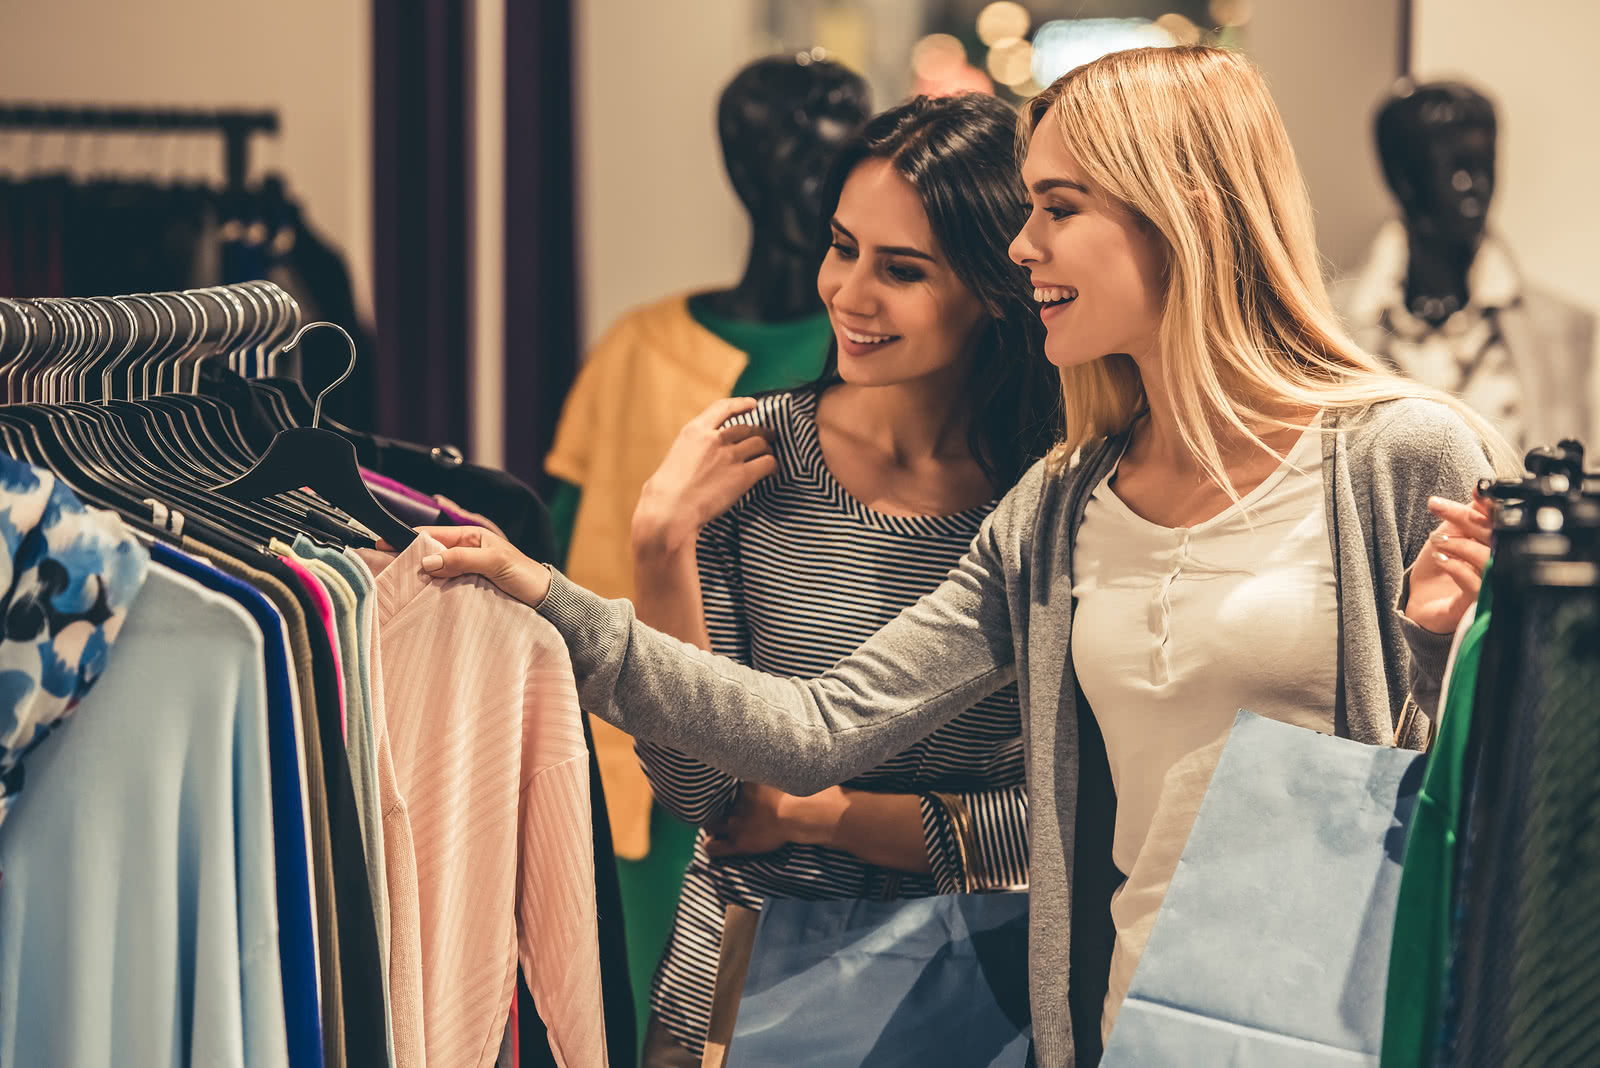 Two women shopping for clothes thinking about starting a retail business